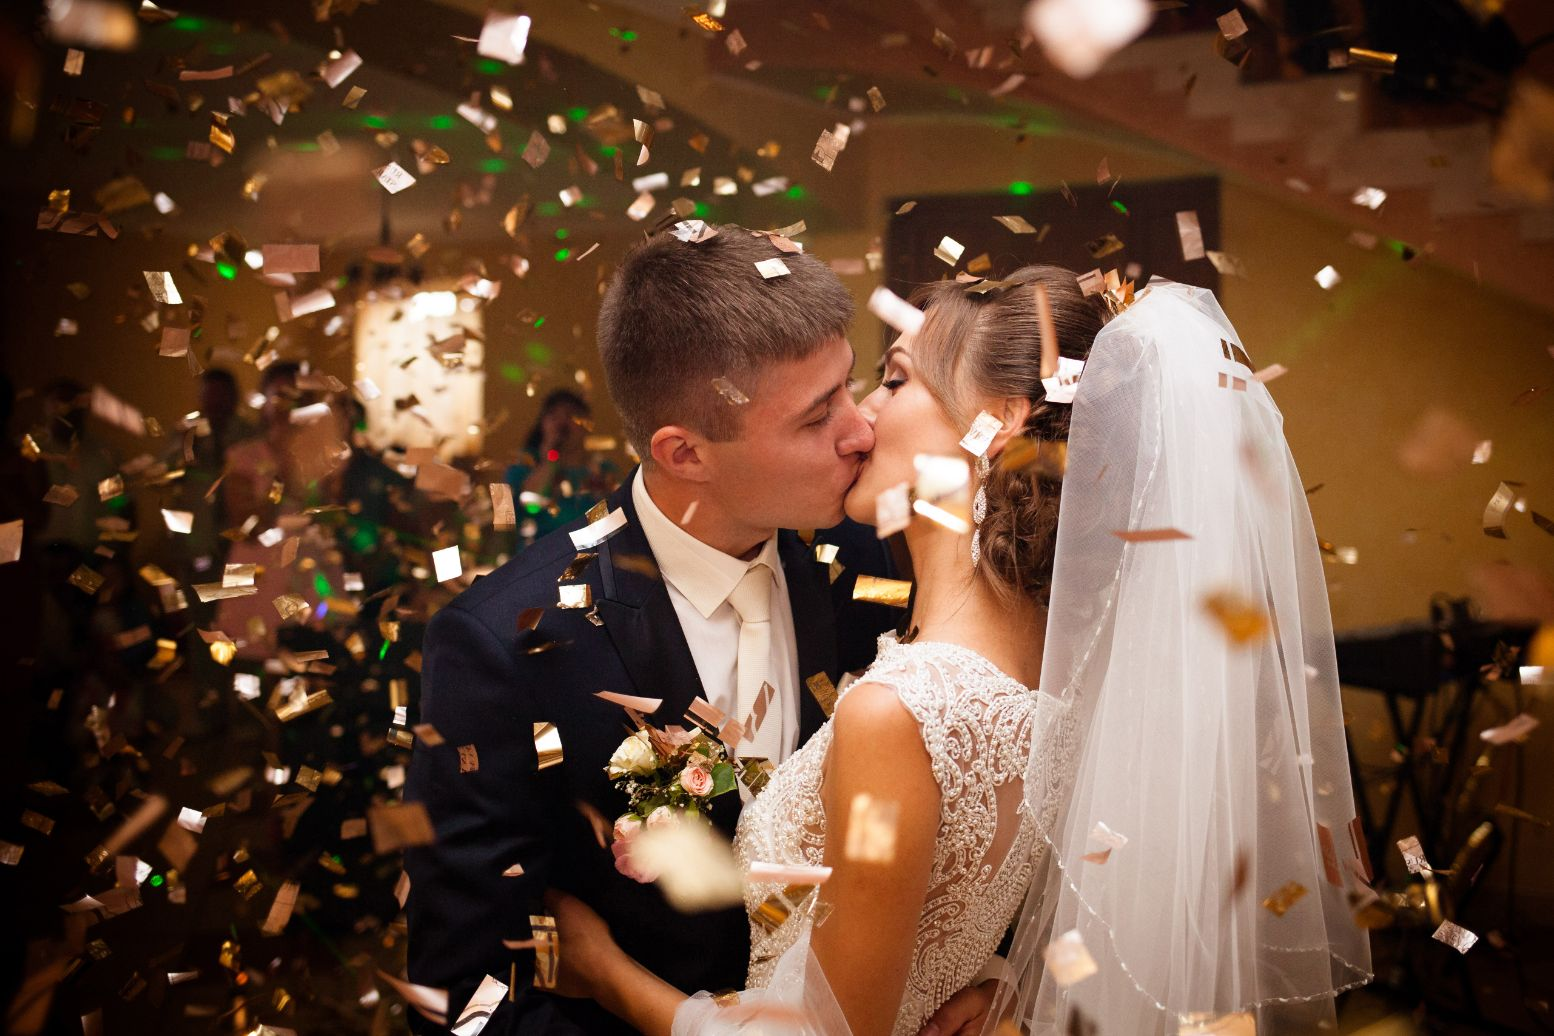 confetti 100 xclusive deejays winter springs florida wedding dj lighting photo booth entertainment